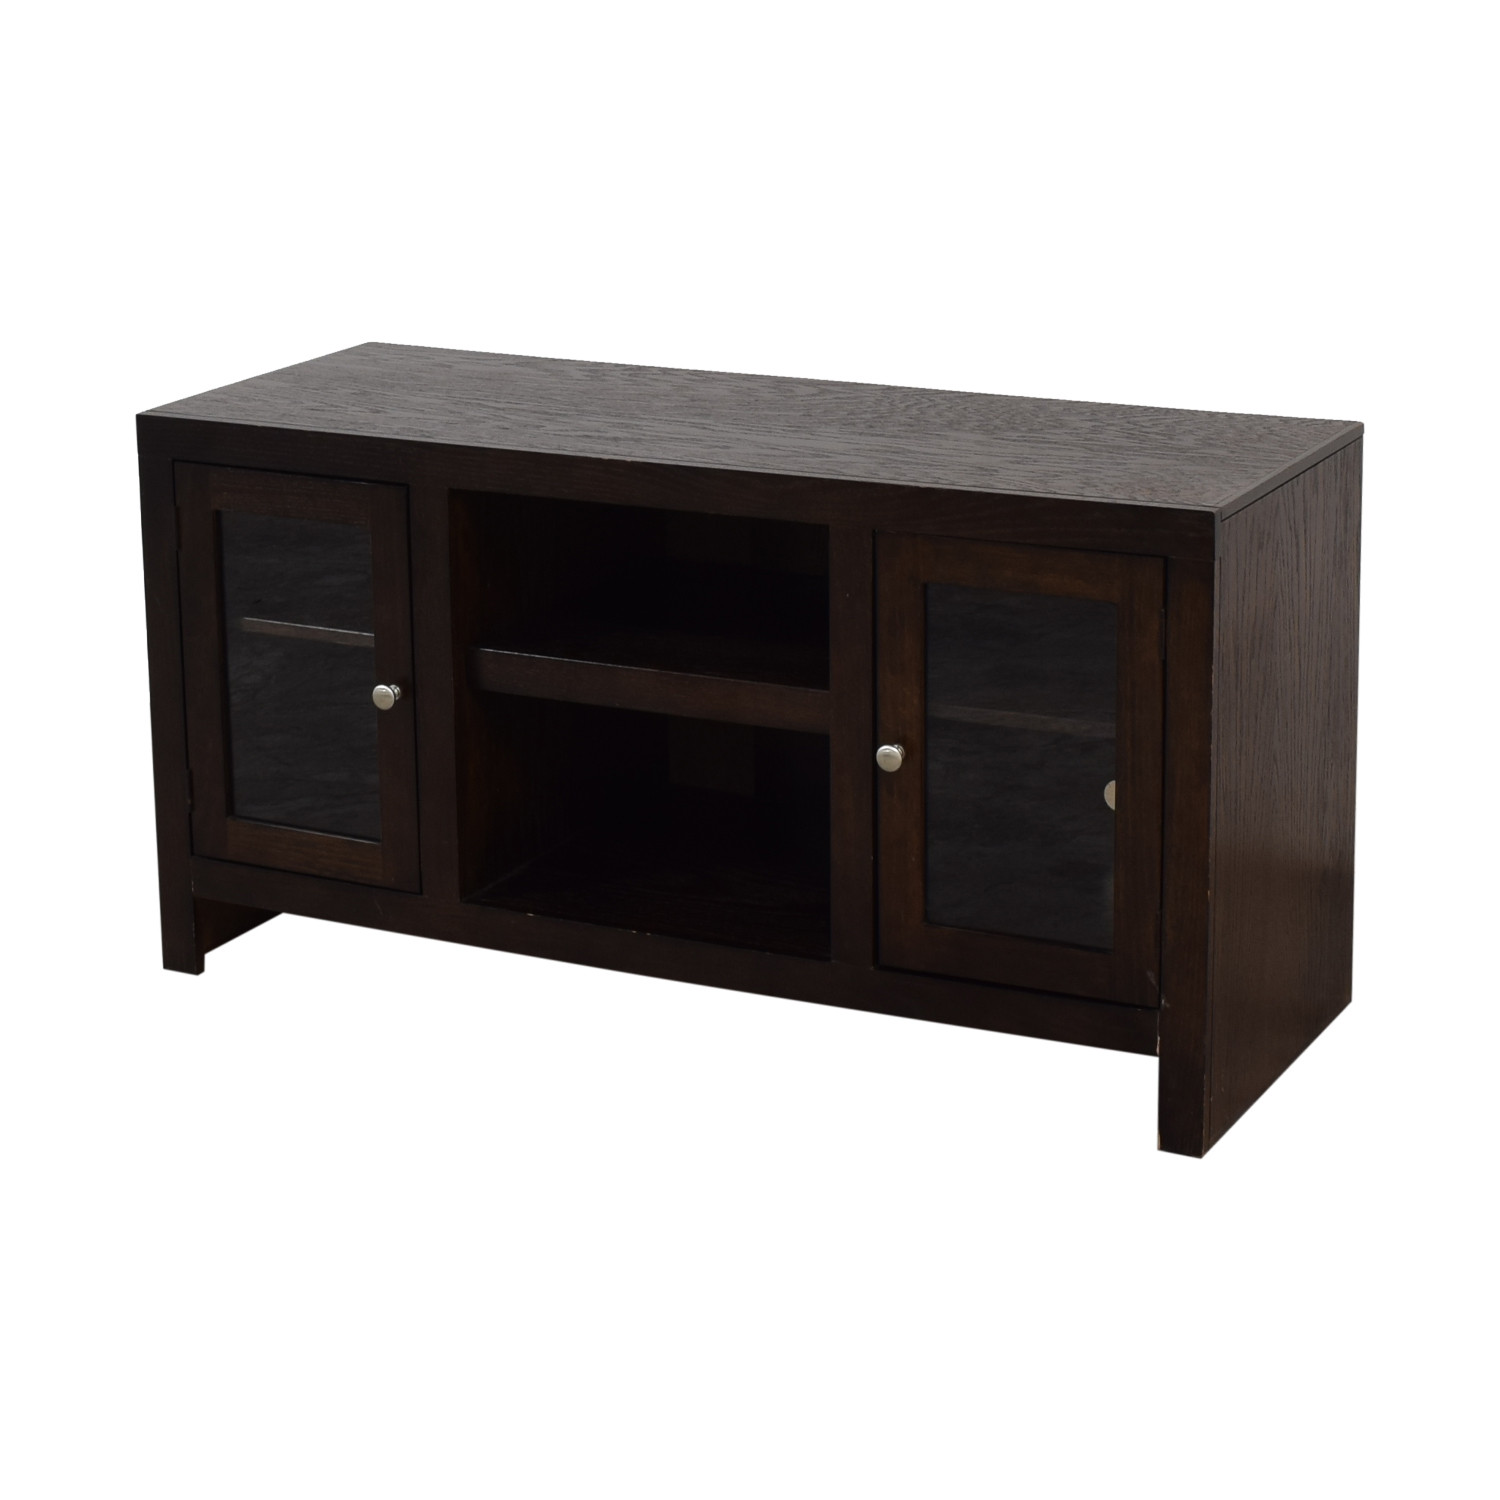 Whalen Furniture Whalen Furniture Media Console coupon